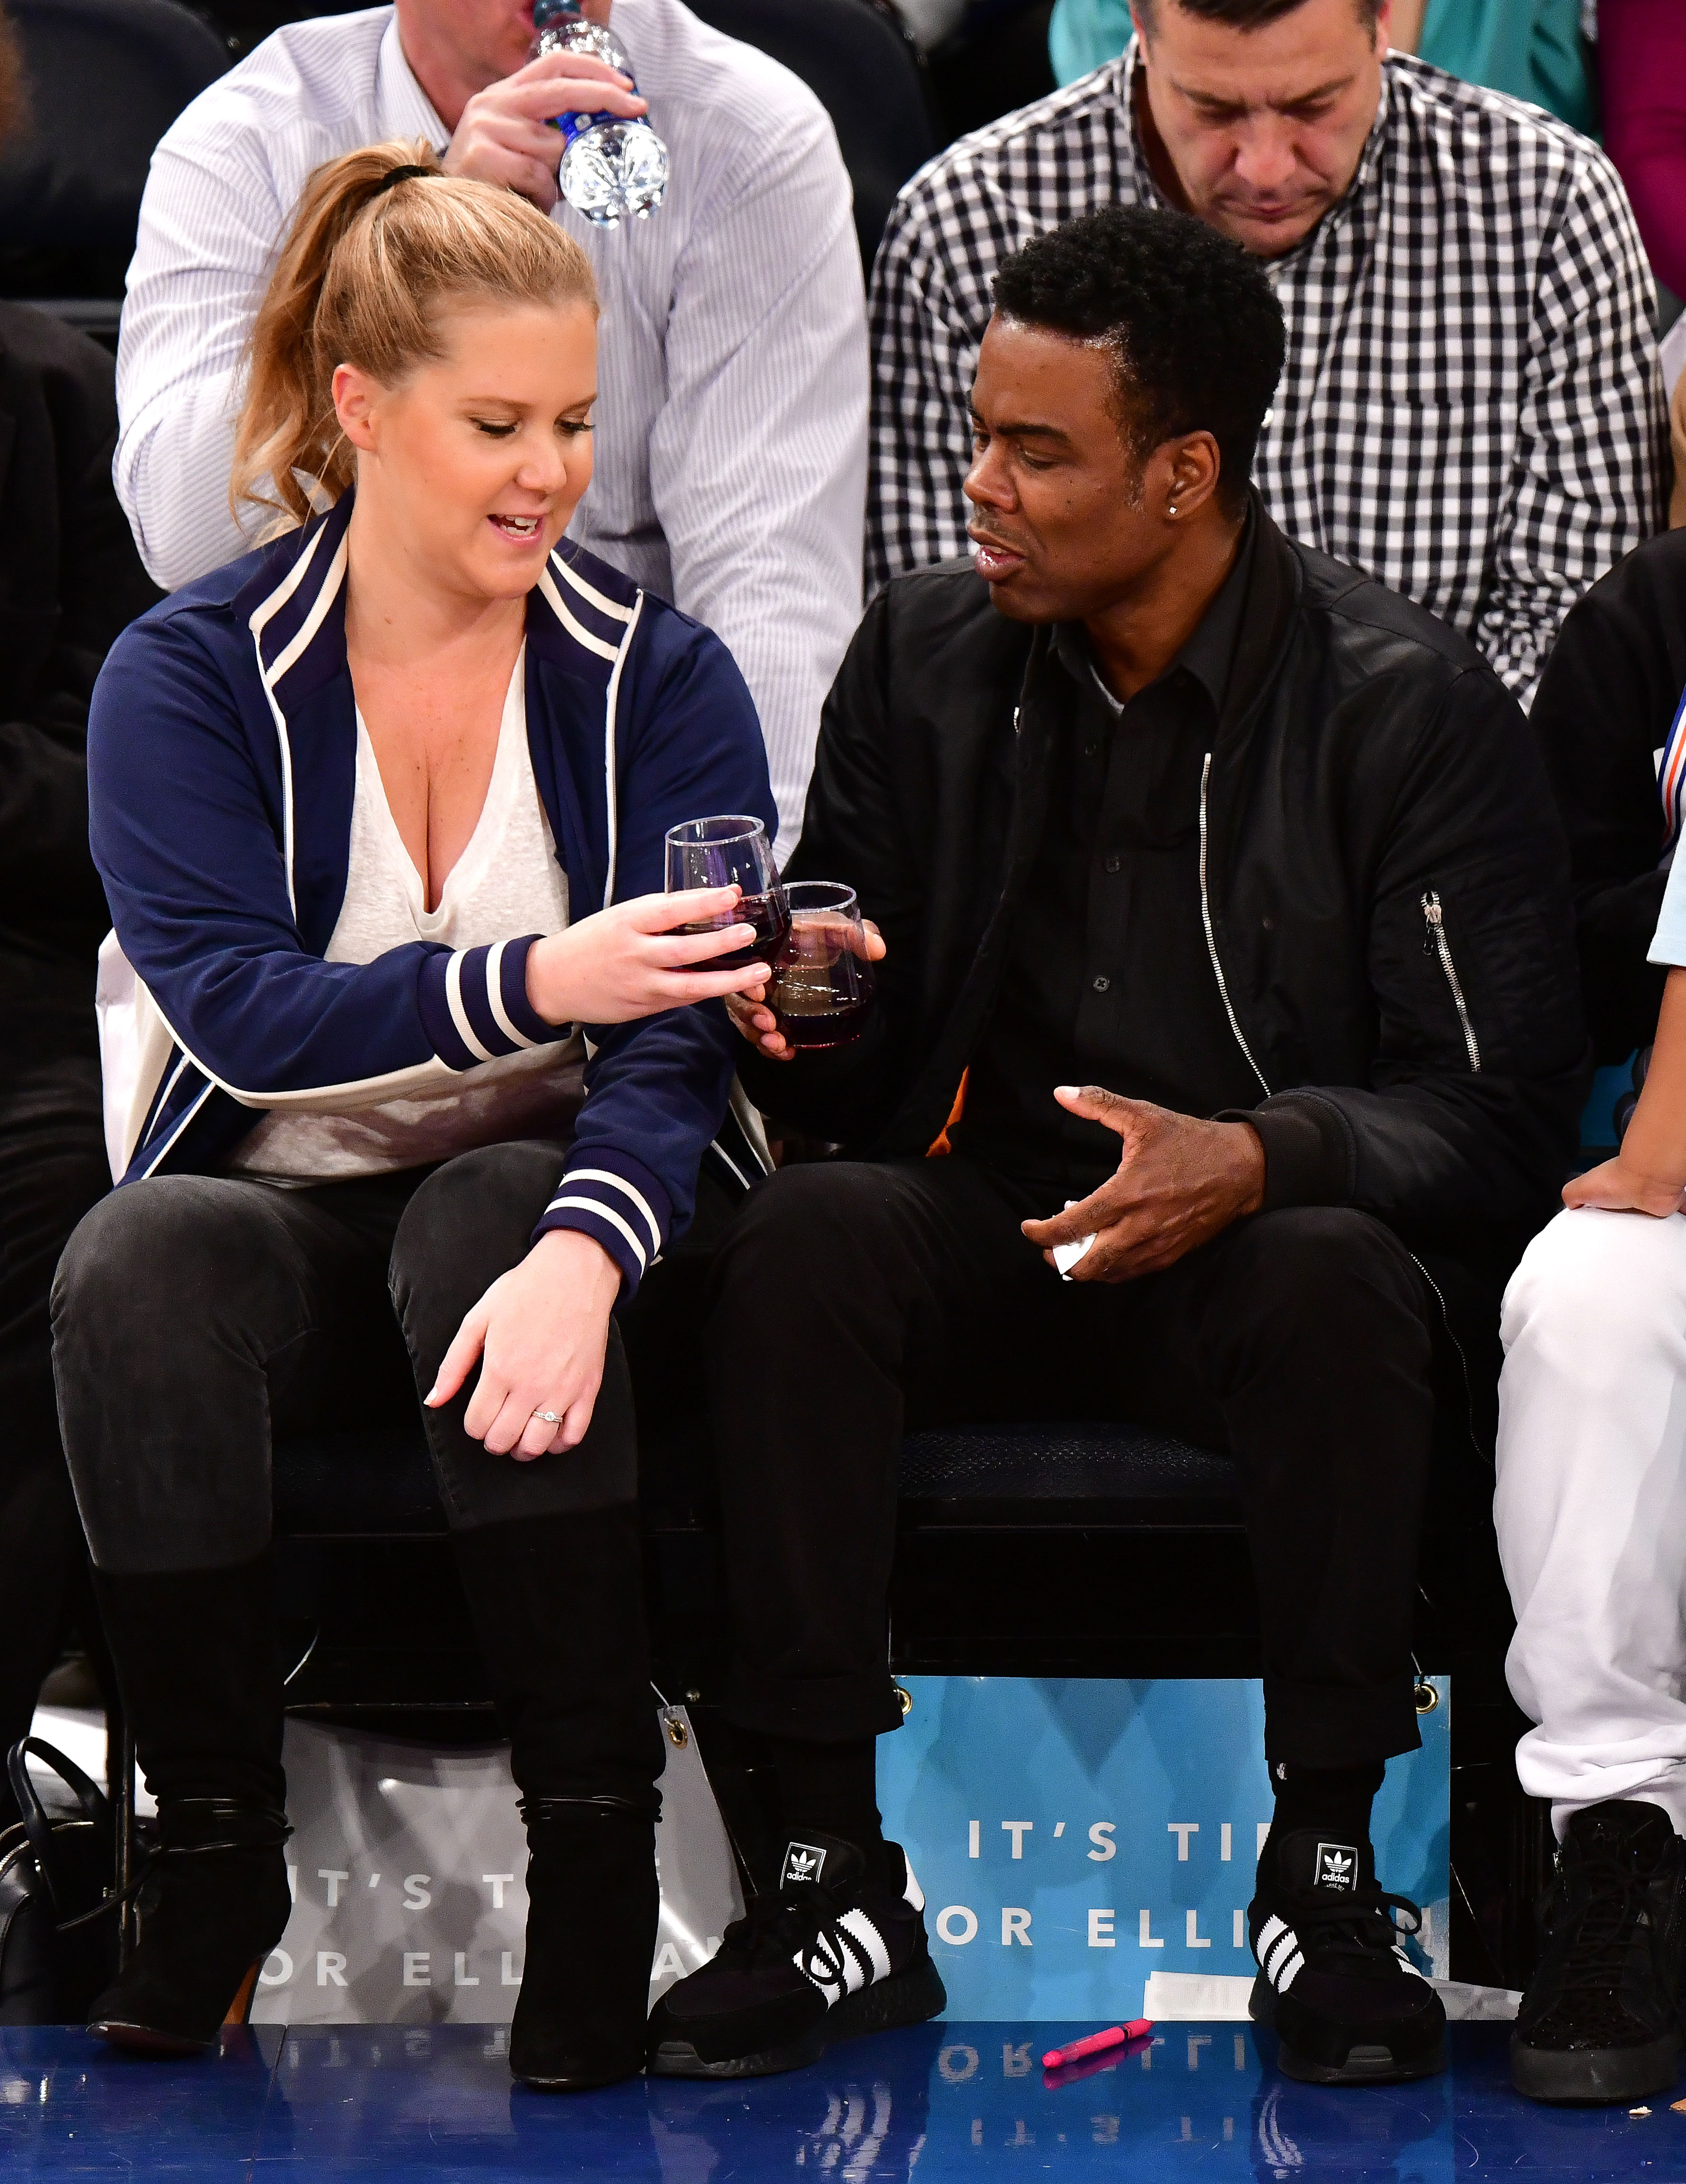 Celebs Eating Courtside - The stars toasted one another while watching the New York Knicks play the Golden State Warriors at Madison Square Garden in New York City on February 26, 2018.